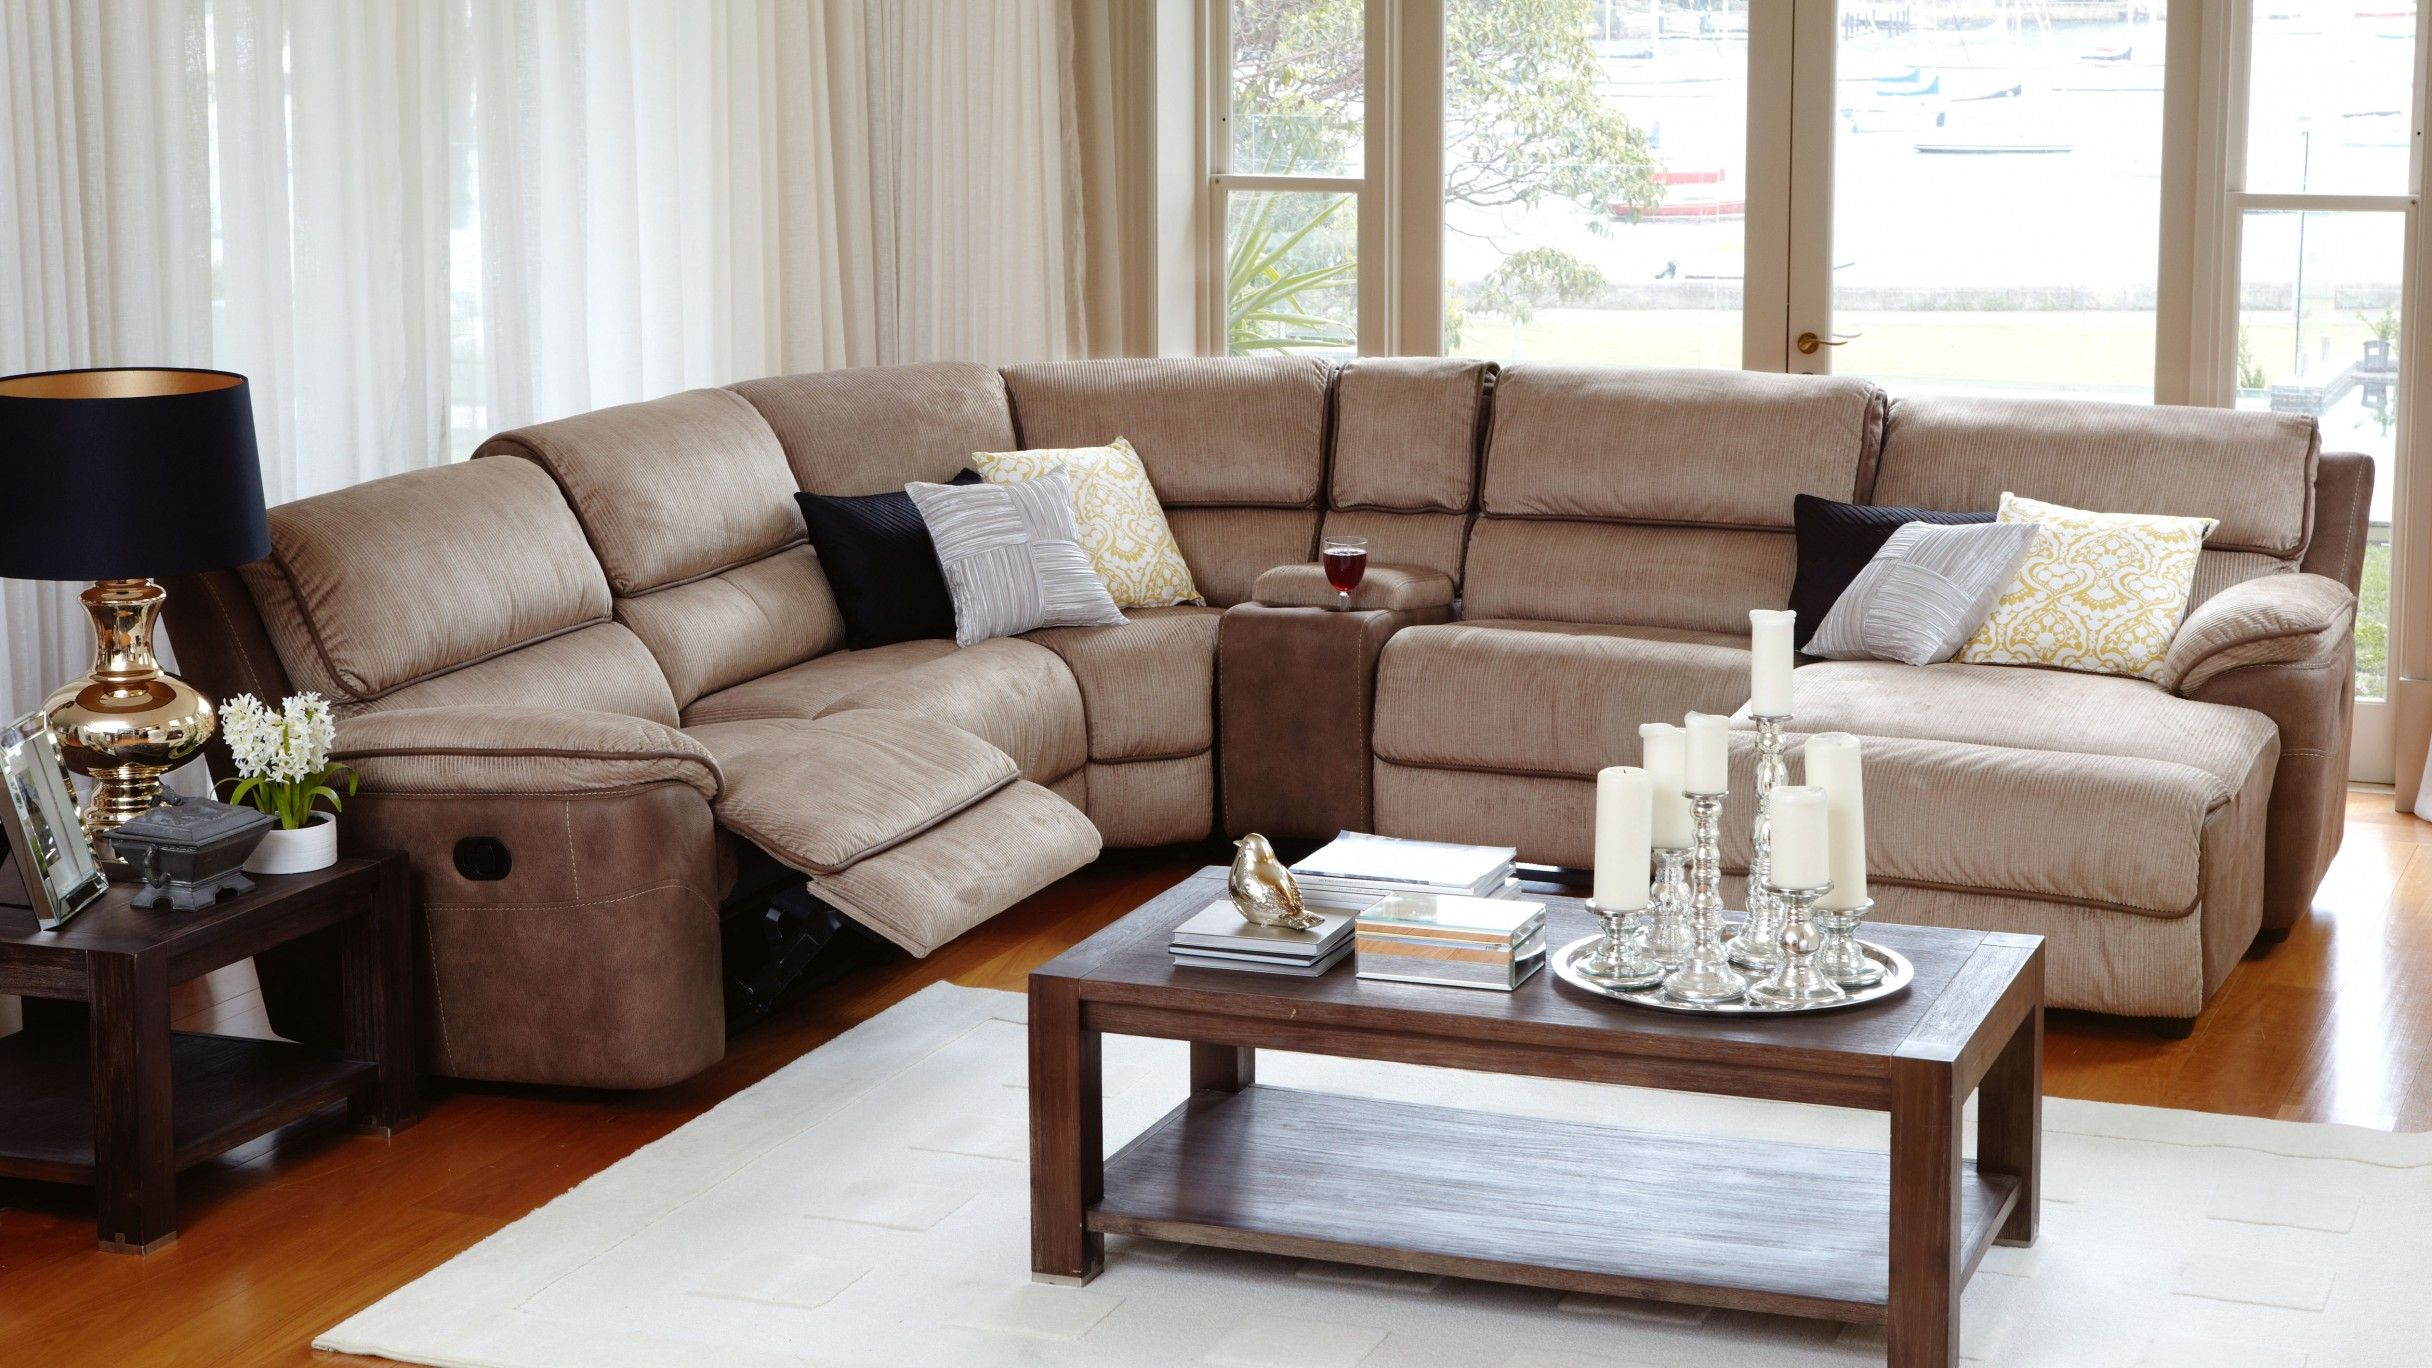 lounge suite sofa bed 2 pc chaise sectional clarke platinum bourbon modular with recliner and